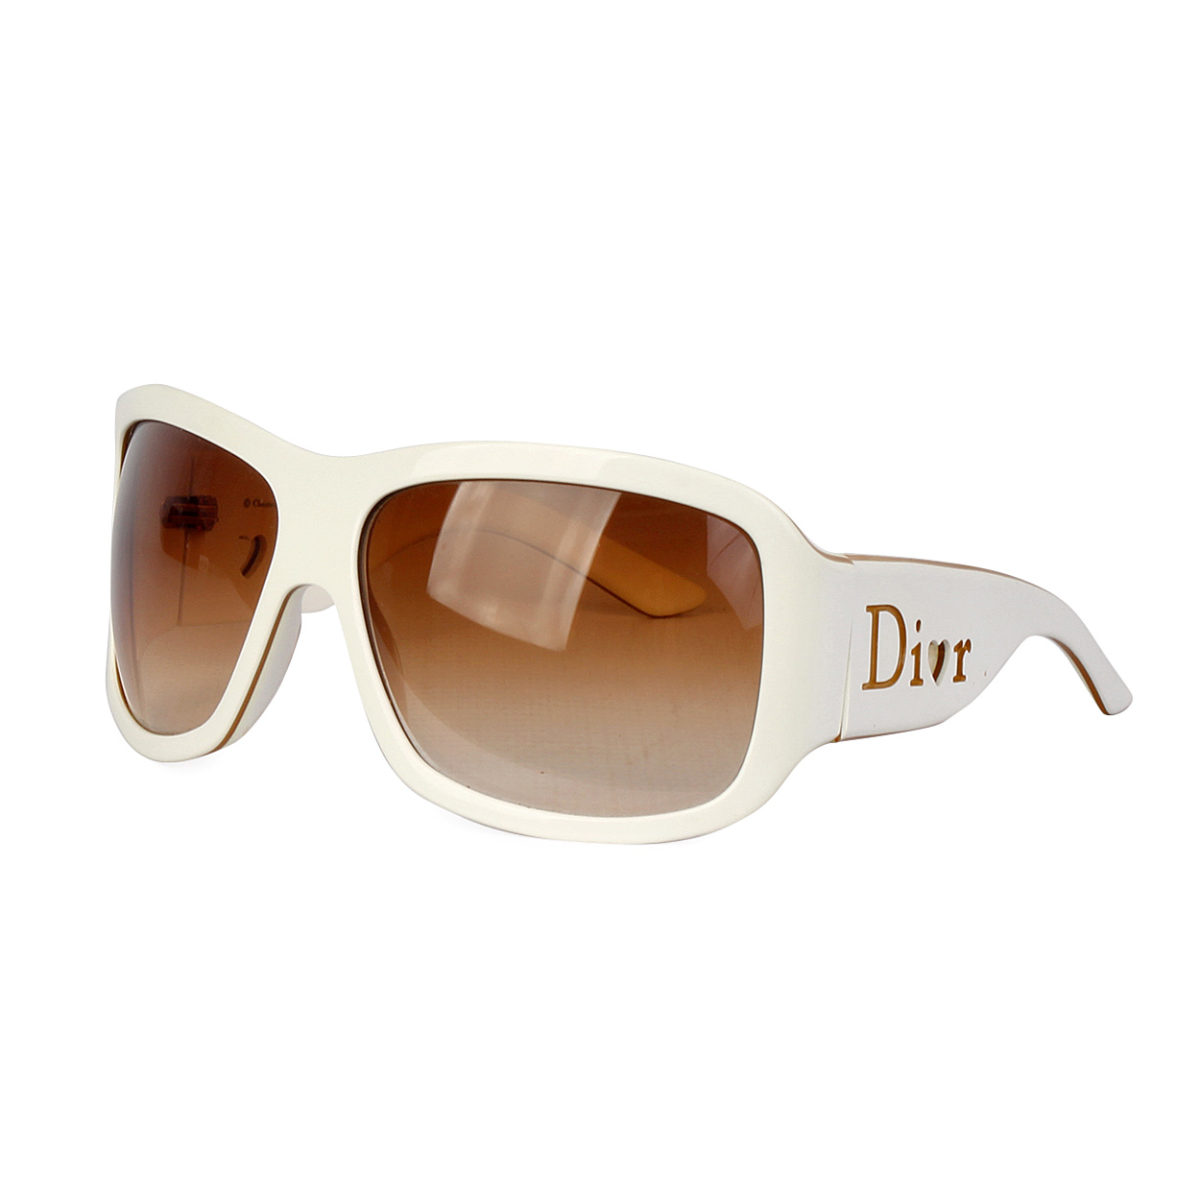 3d8a6c87b336 CHRISTIAN DIOR Lovingly Dior 1 Sunglasses White